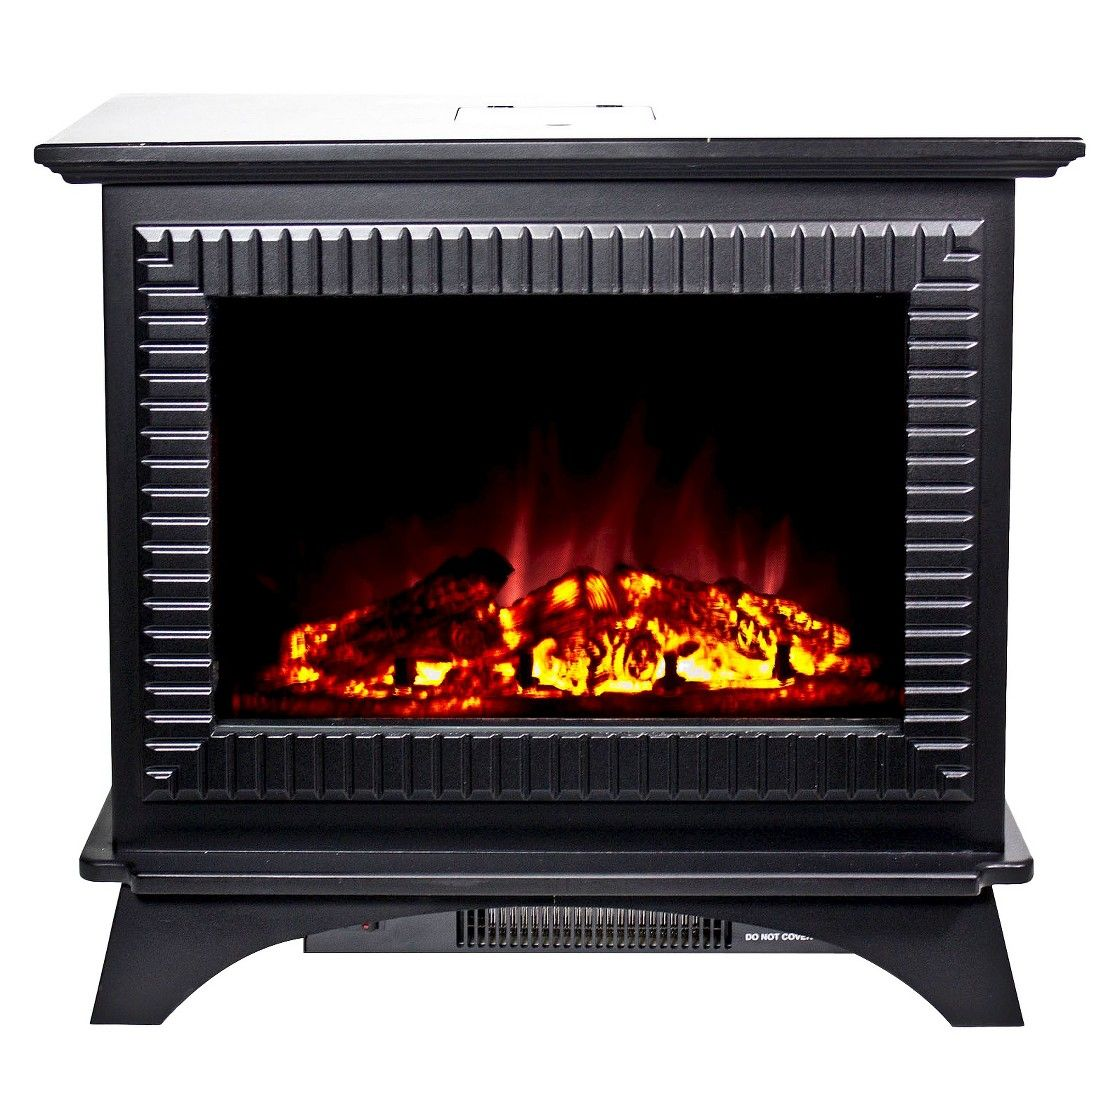 Frigidaire Boston 27 Floor Standing Electric Fi Target Electric Fireplace Fireplace Heater Black Electric Fireplace